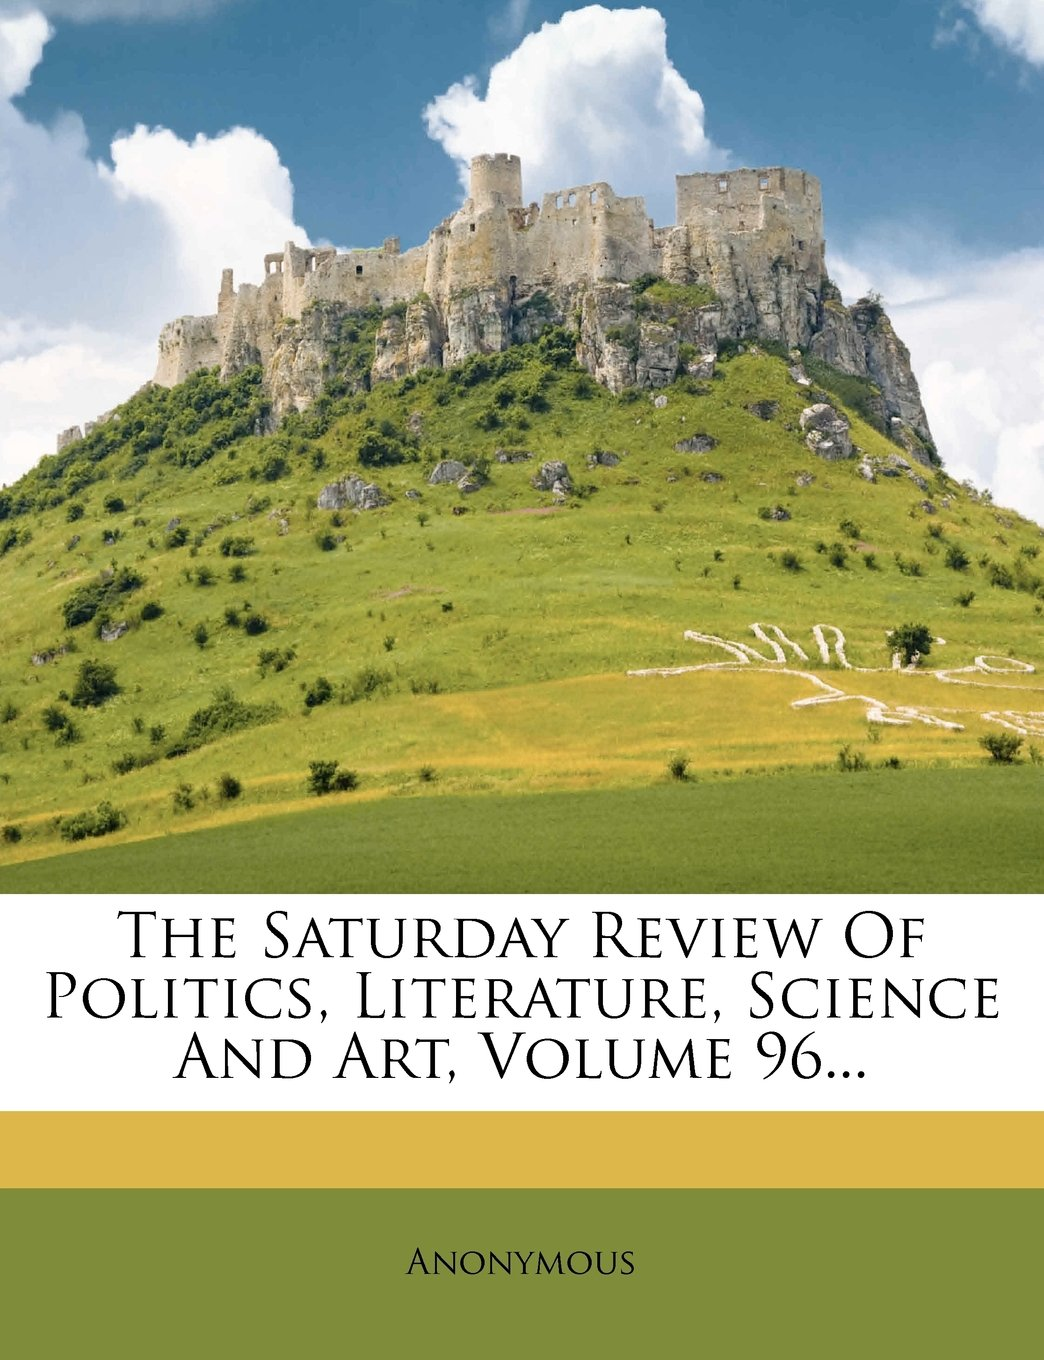 Download The Saturday Review Of Politics, Literature, Science And Art, Volume 96... ebook